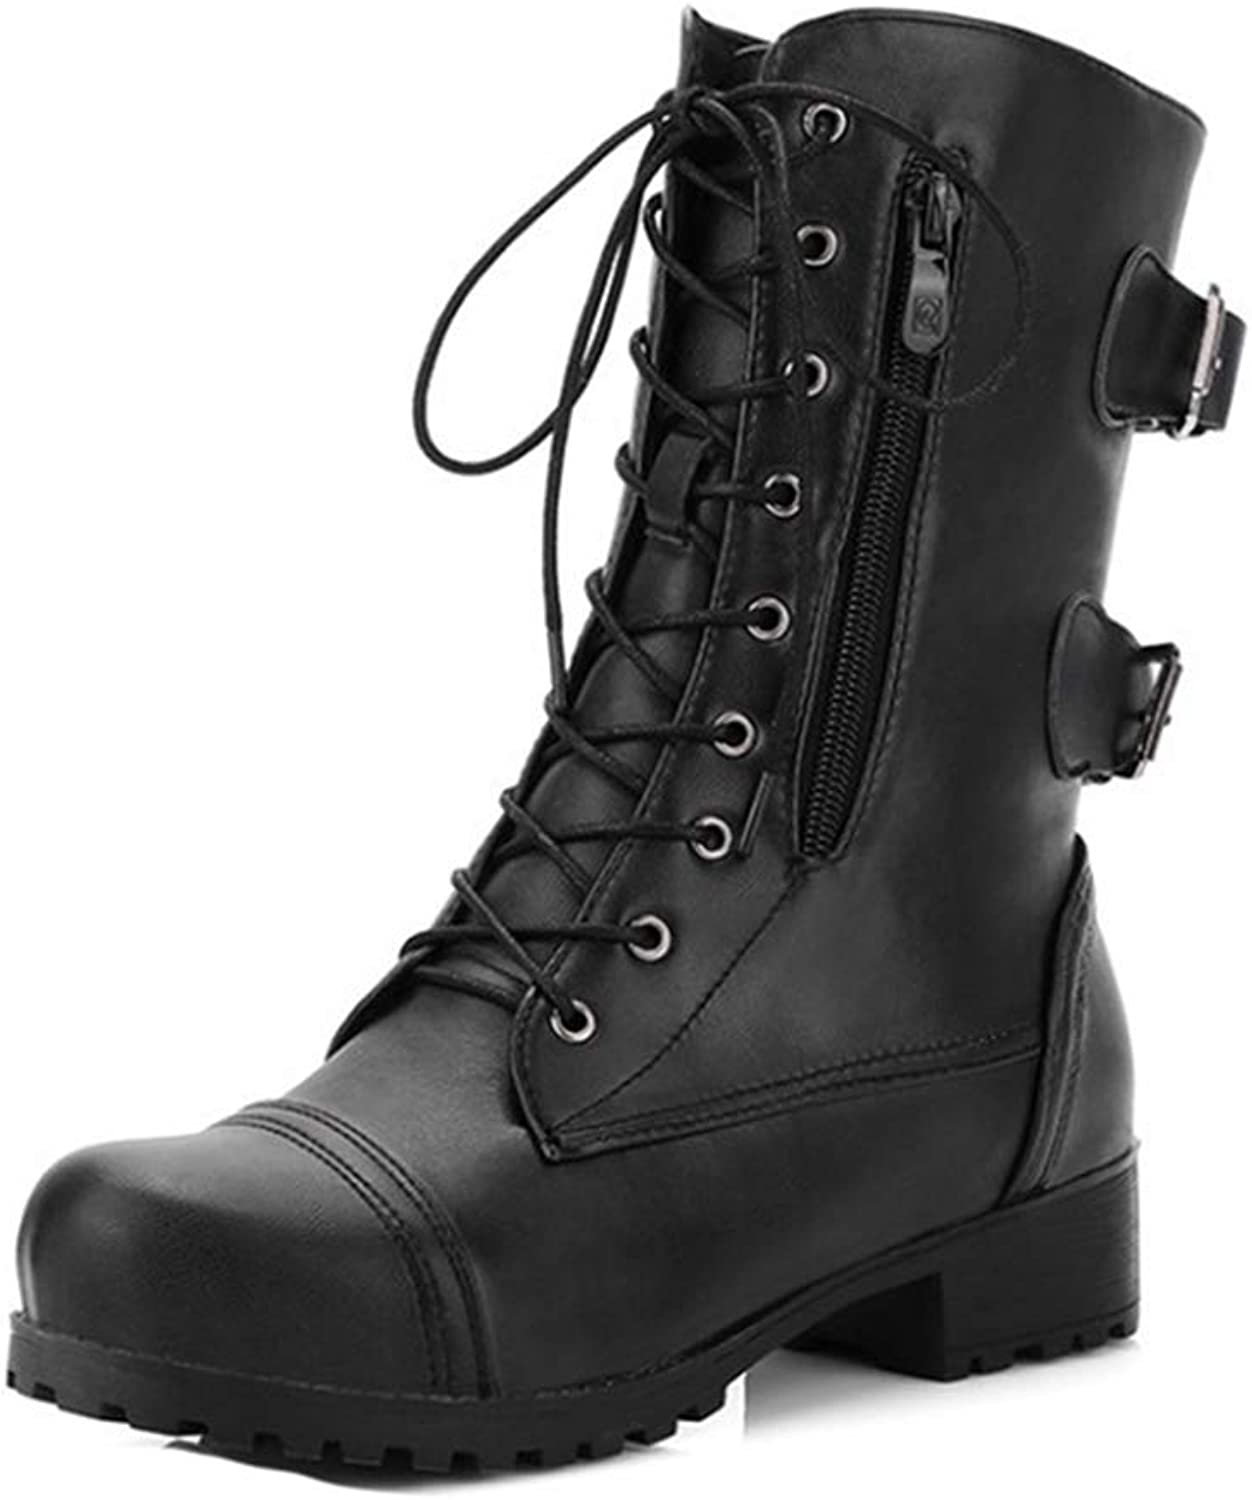 GIY Women's Combat Mid Calf Boots Lace Up Zipper Buckle Round Toe Low Heel Motorcycle Military Riding Boot